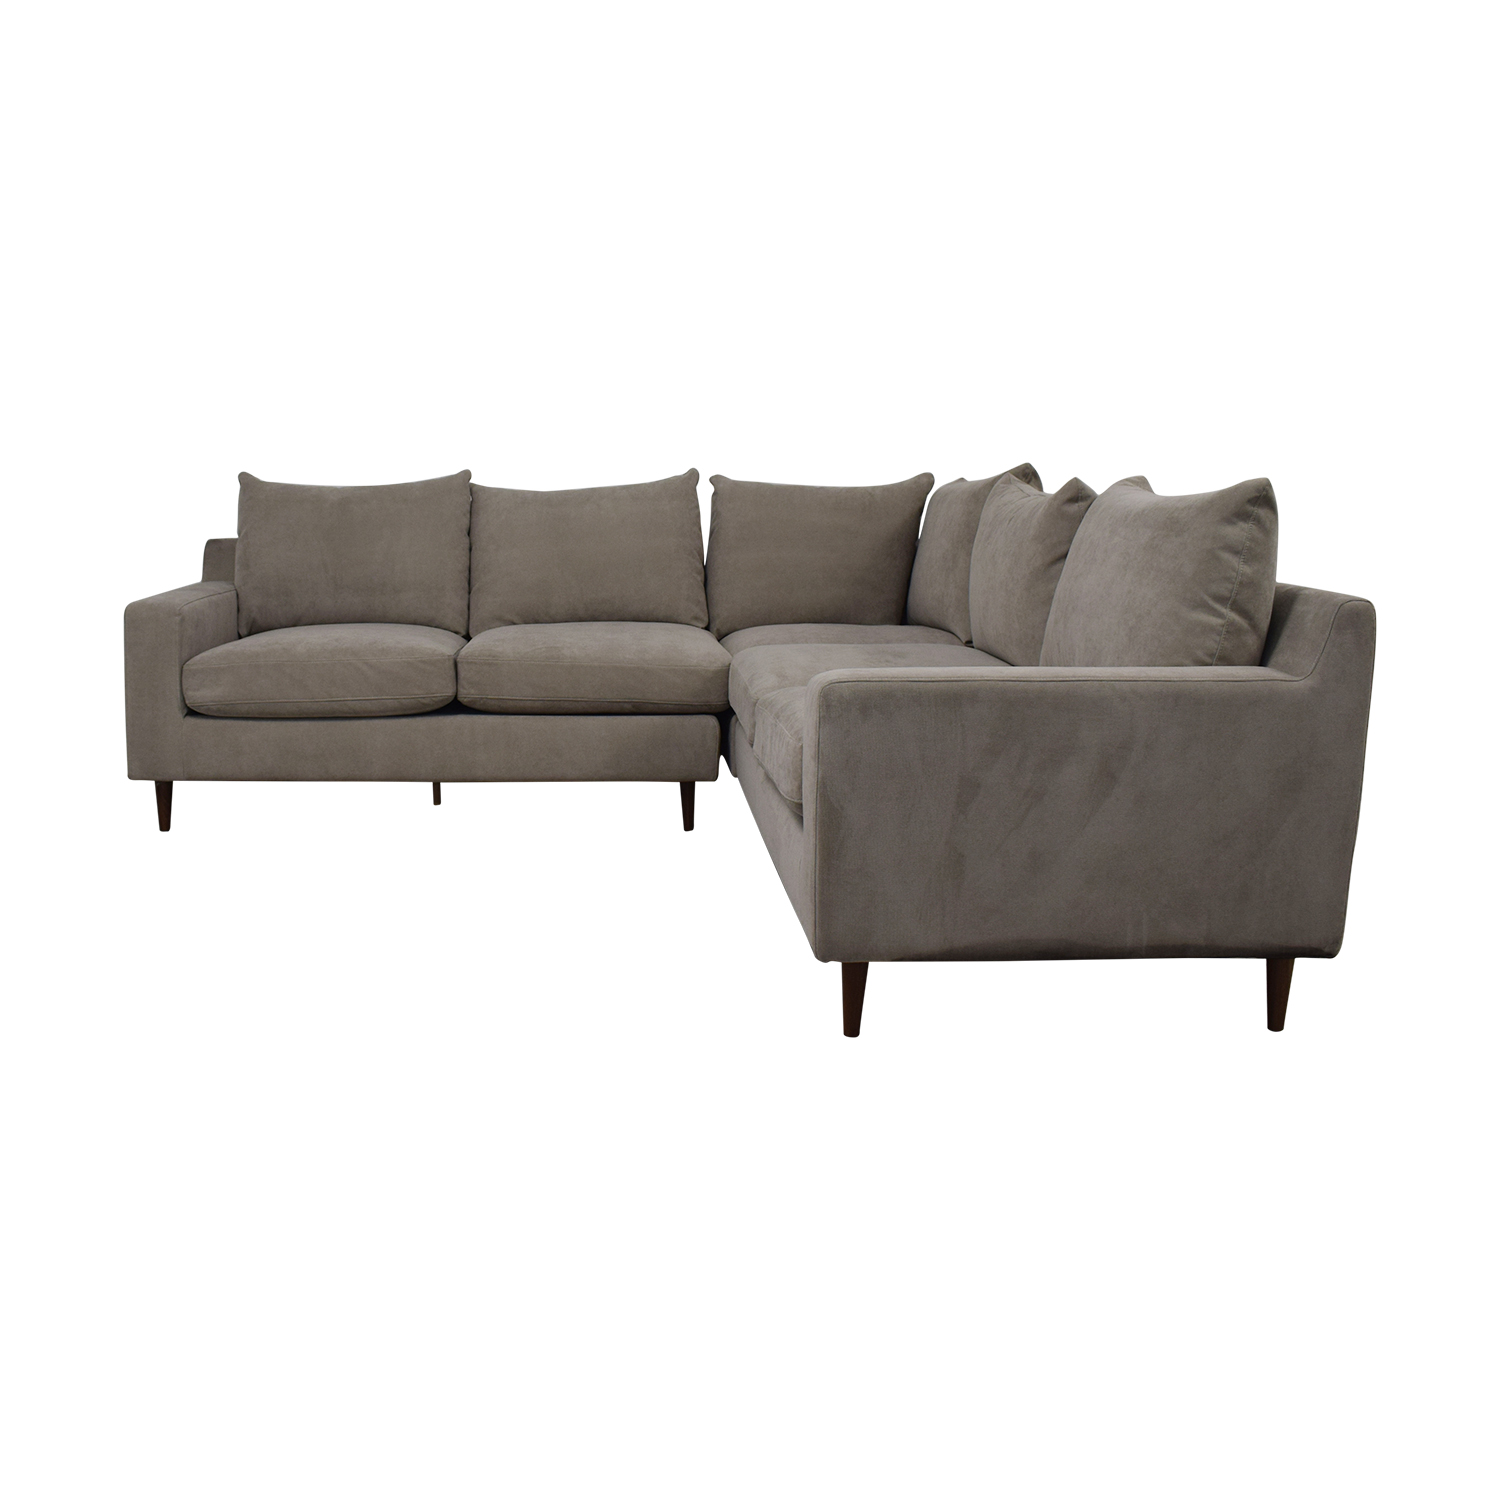 buy Interior Define Sloan Beige Sectional online